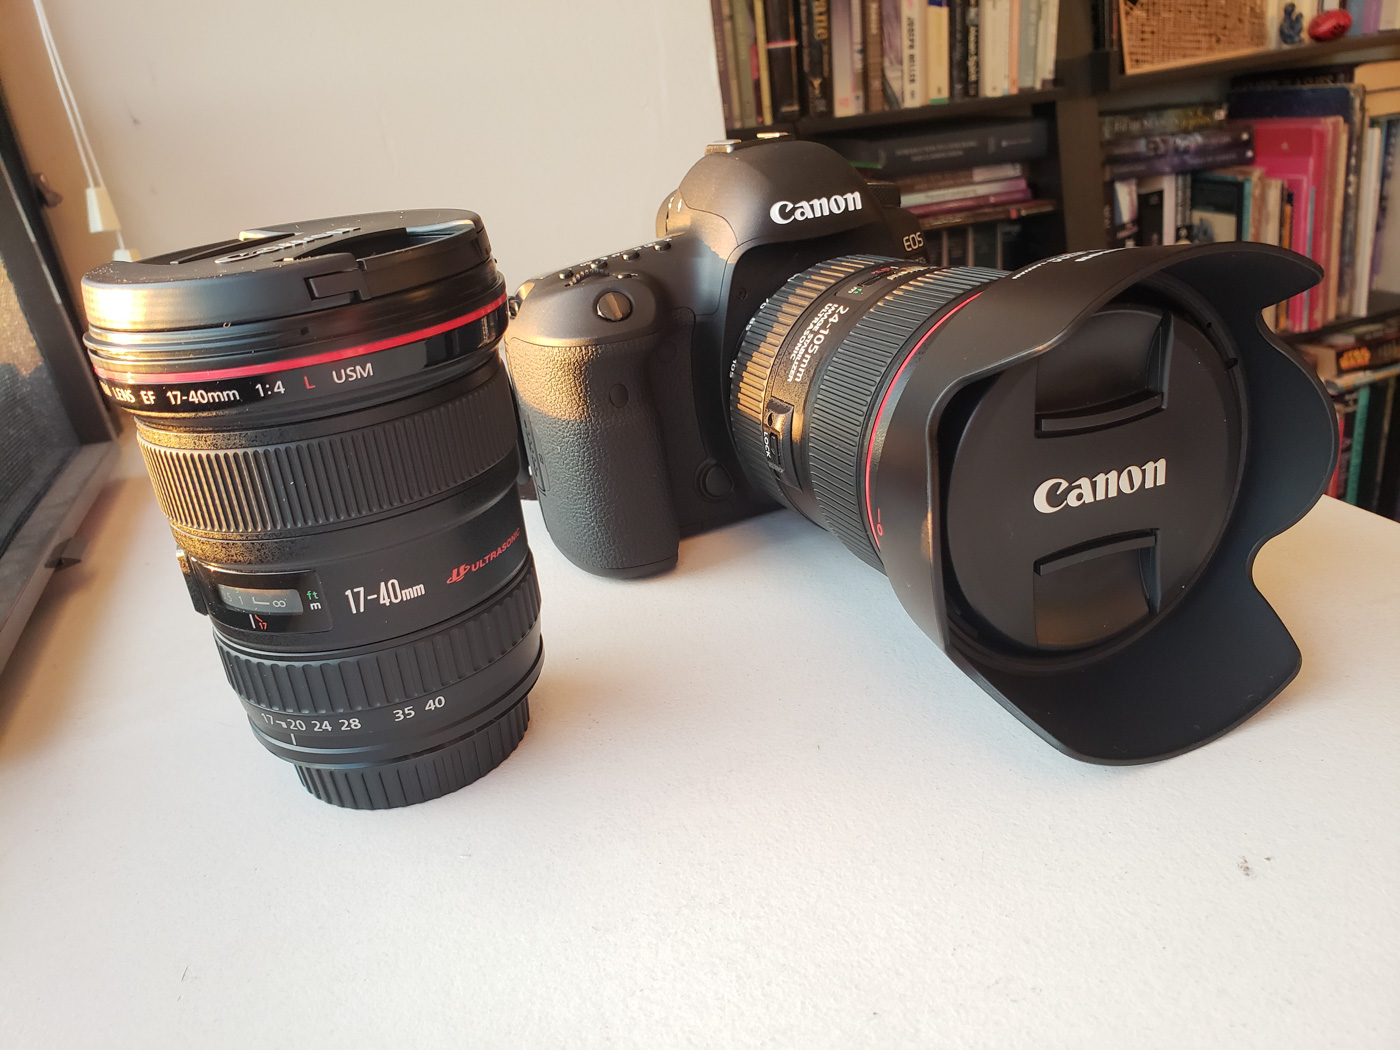 New Camera, New Lenses